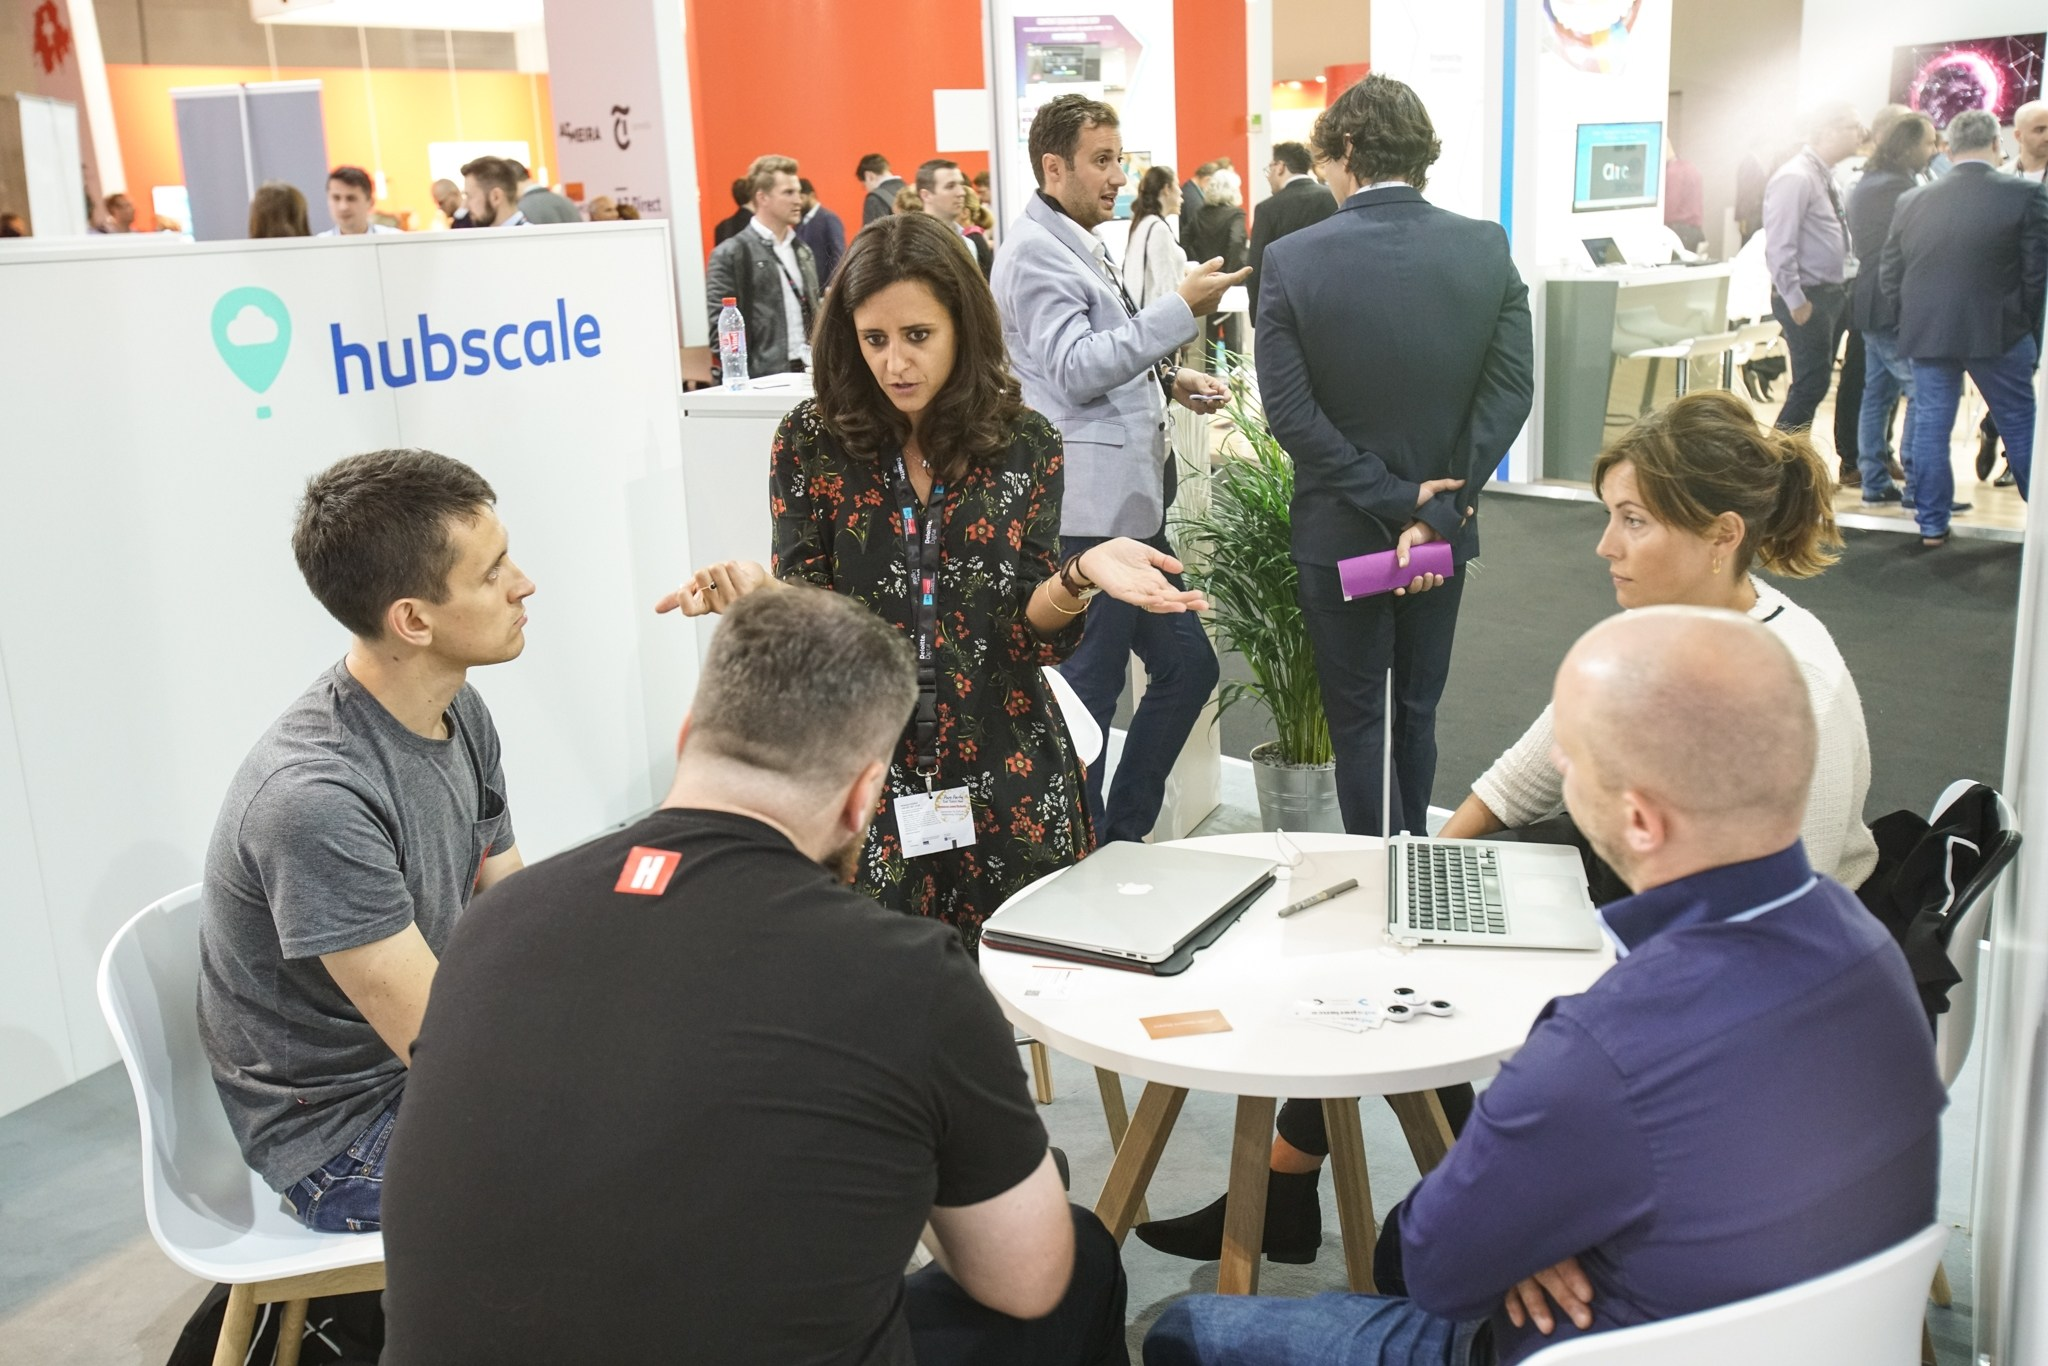 Hubscale Dmexco 2017